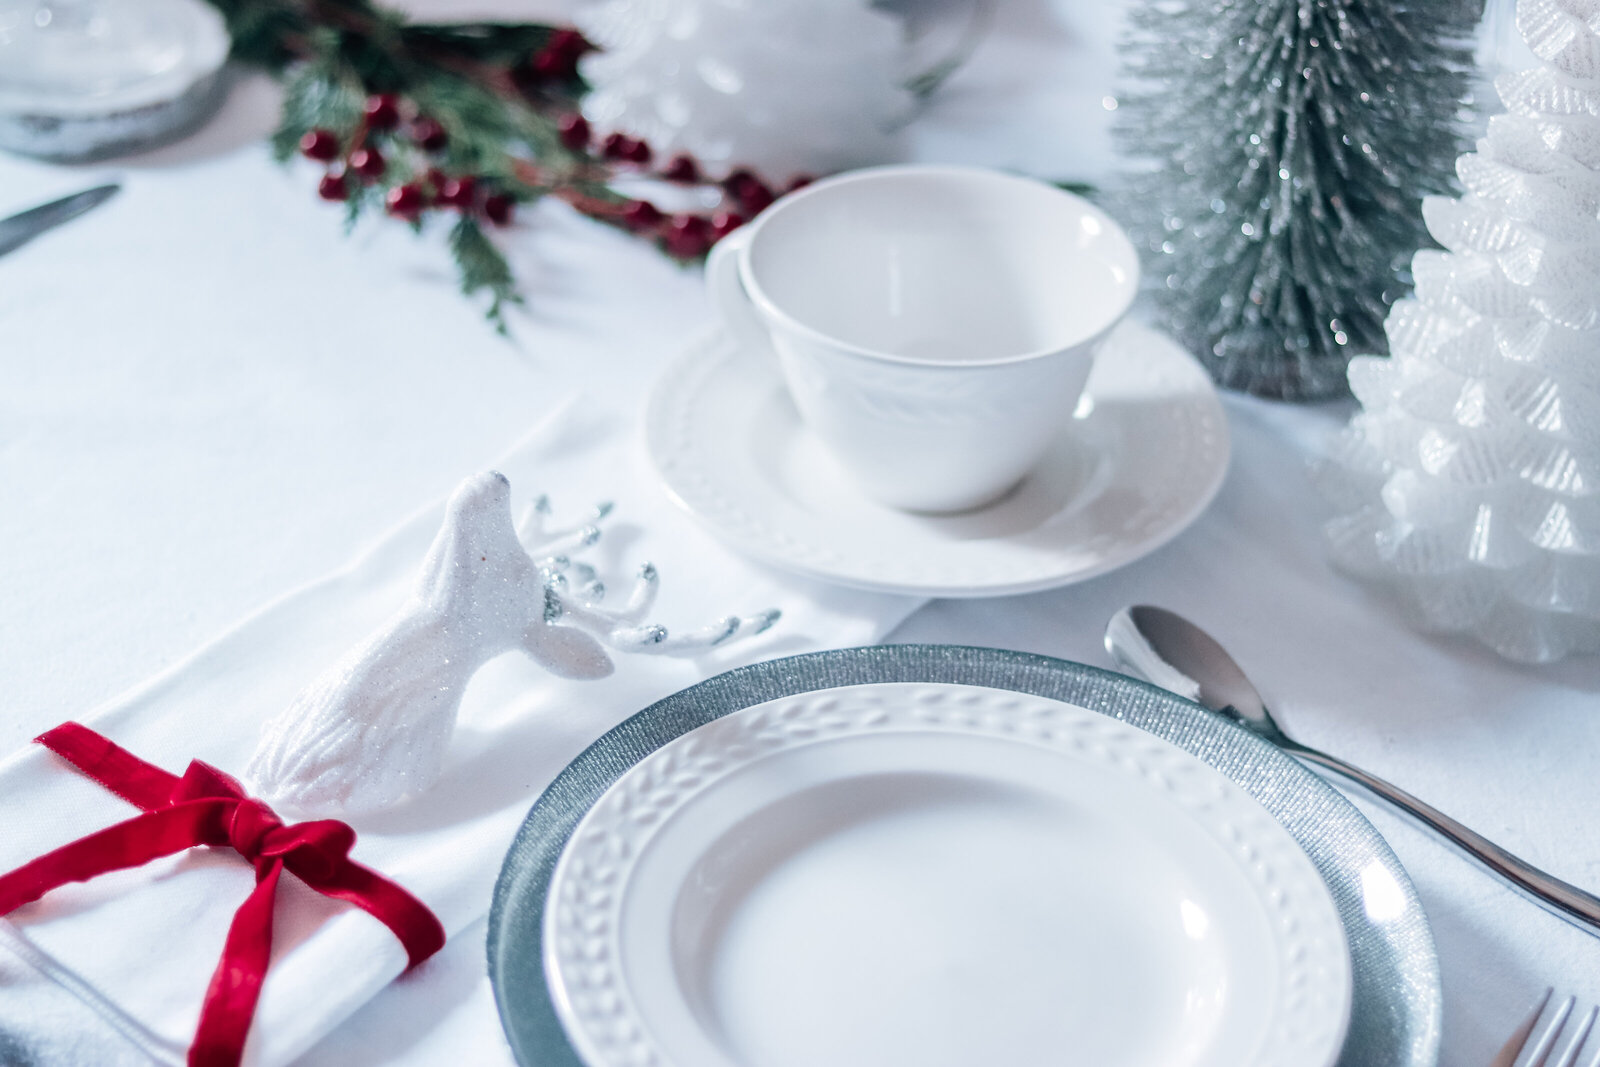 art de la table christmas wedding decor new year details forest theme white red silver Pearl Ivy events